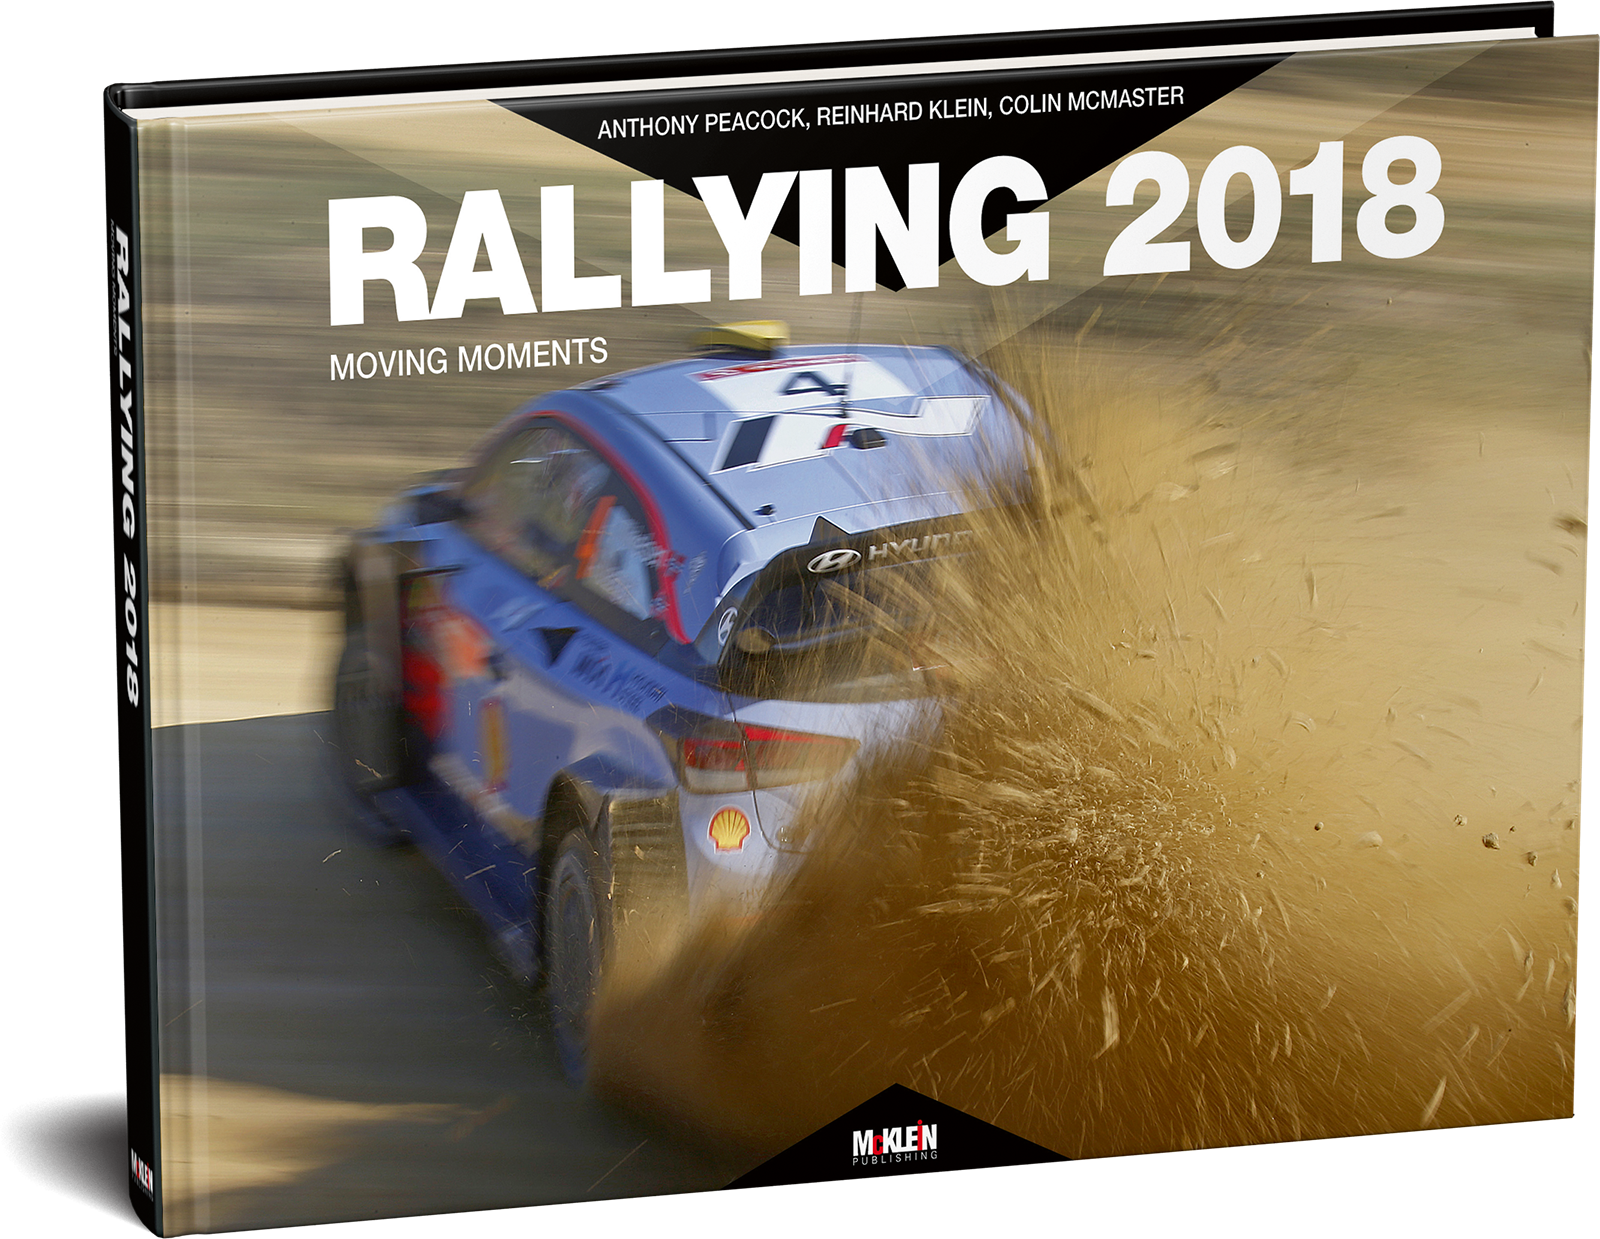 RALLYING2018_MCKLEIN_YEARBOOK_0001.png